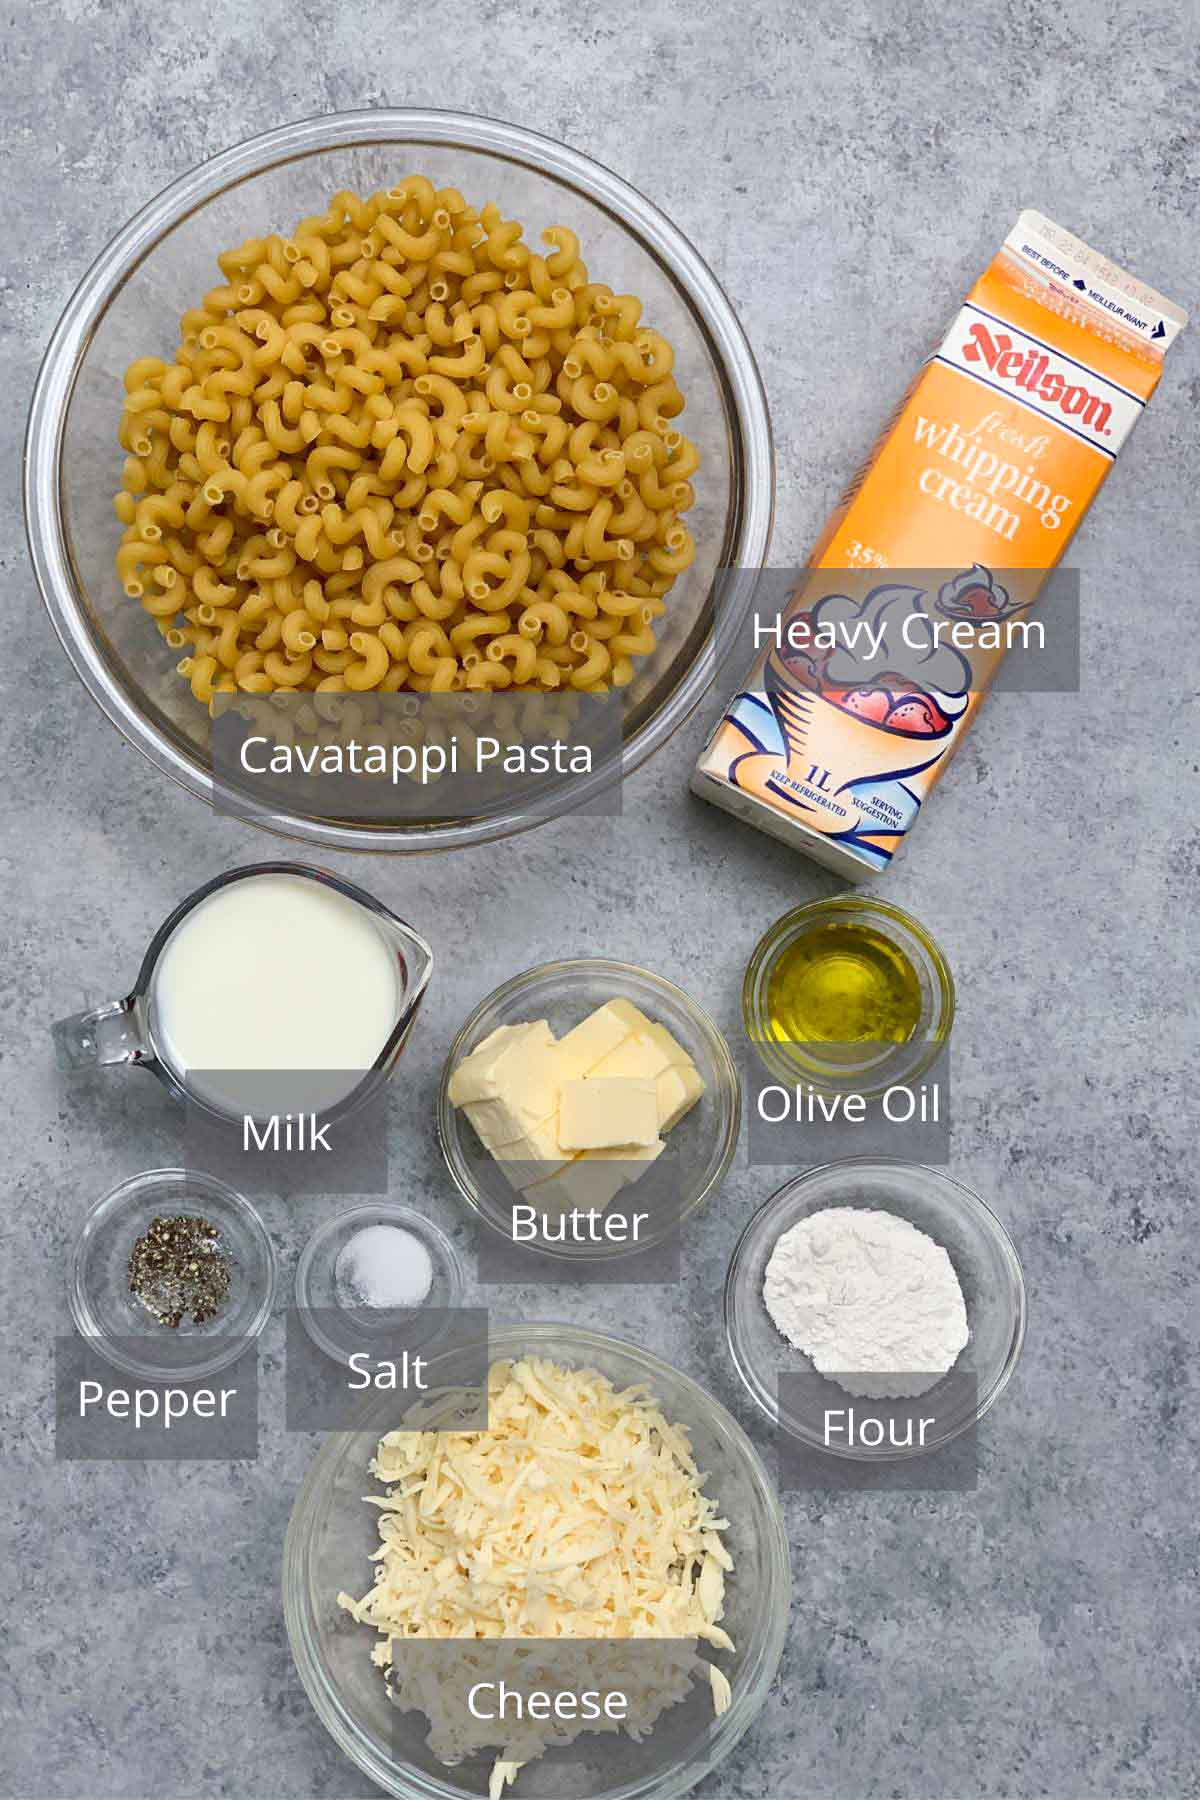 Creamy Cavatappi Pasta ingredients on the counter.